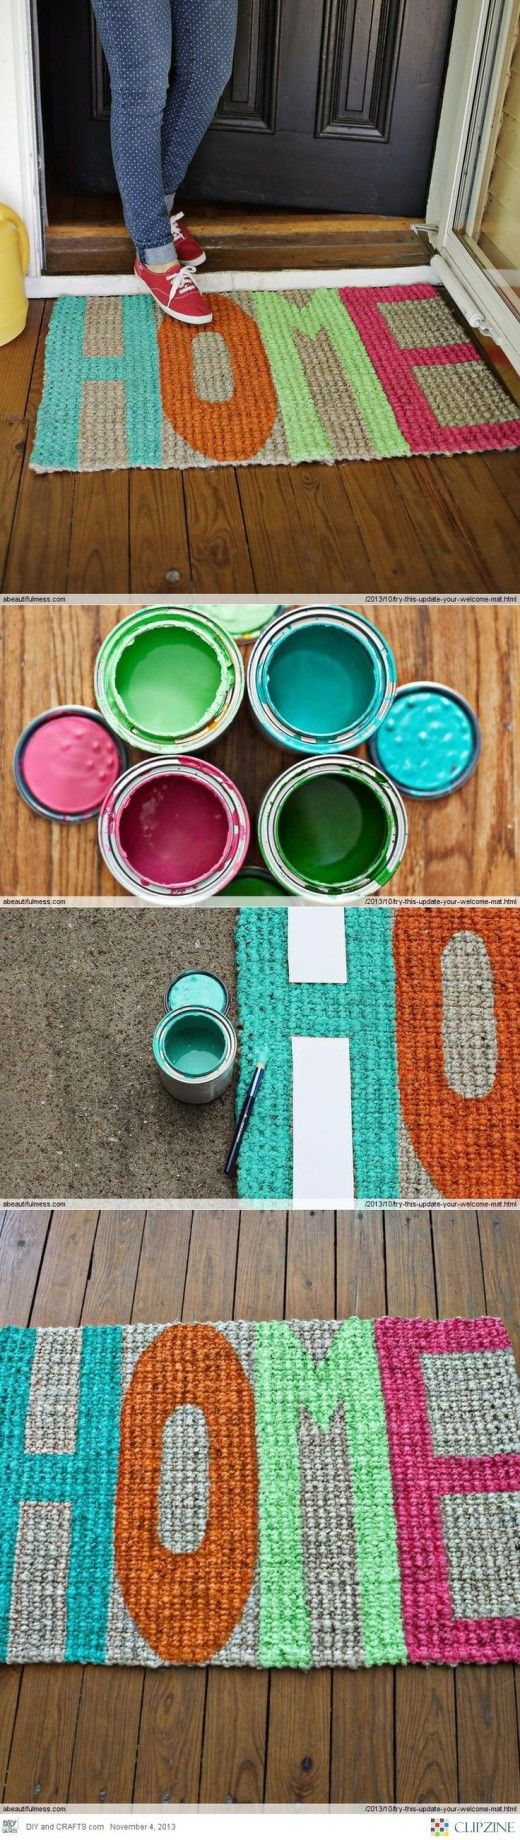 DIY Tutorial - Welcome Mat | #DIY and #Crafts